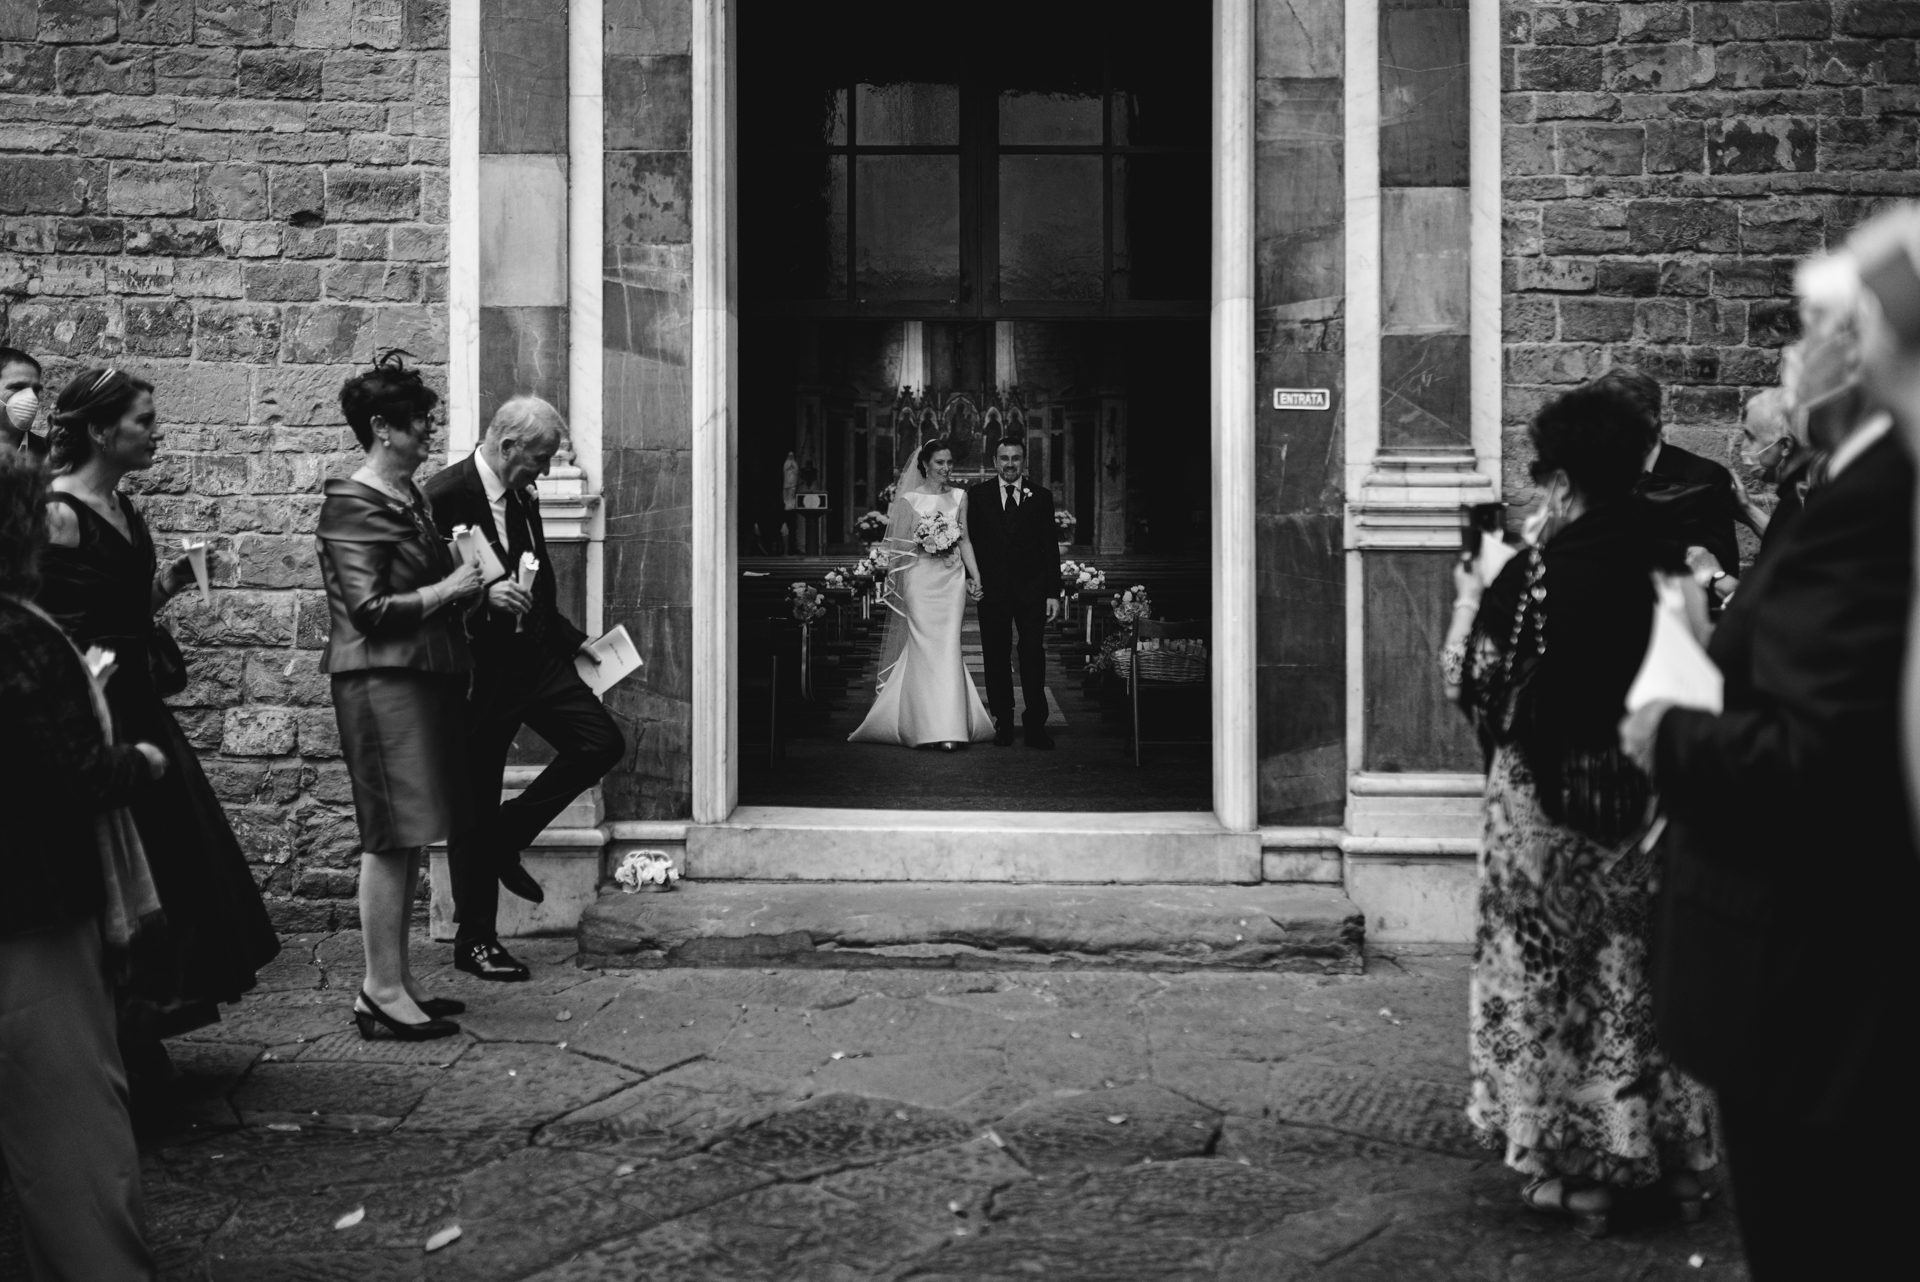 Tuscany Elopement Image | The bride and groom prepare to exit the ceremon